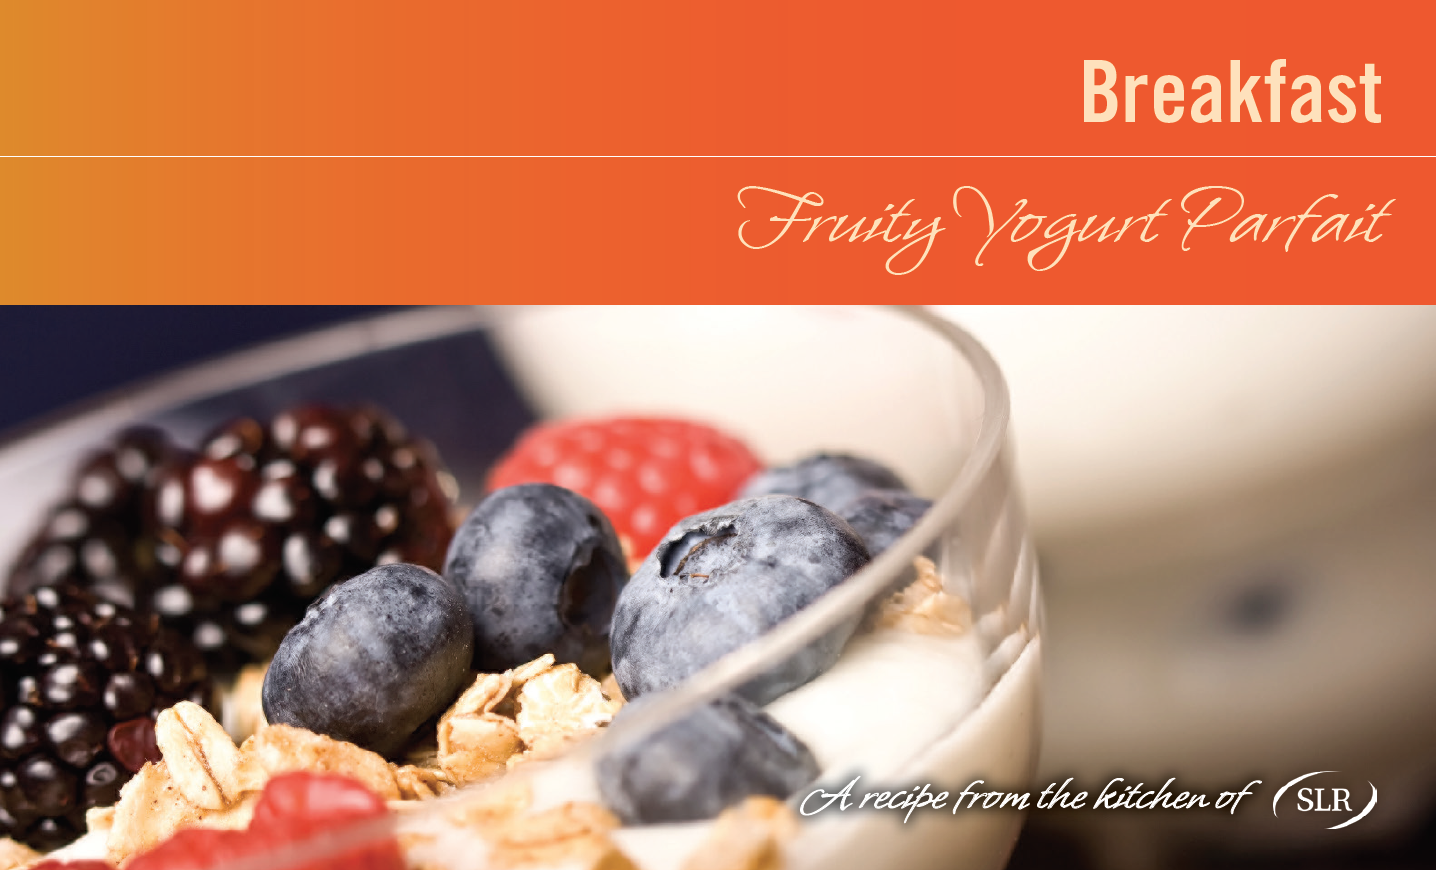 Fruity Yogurt Parfait recipe card